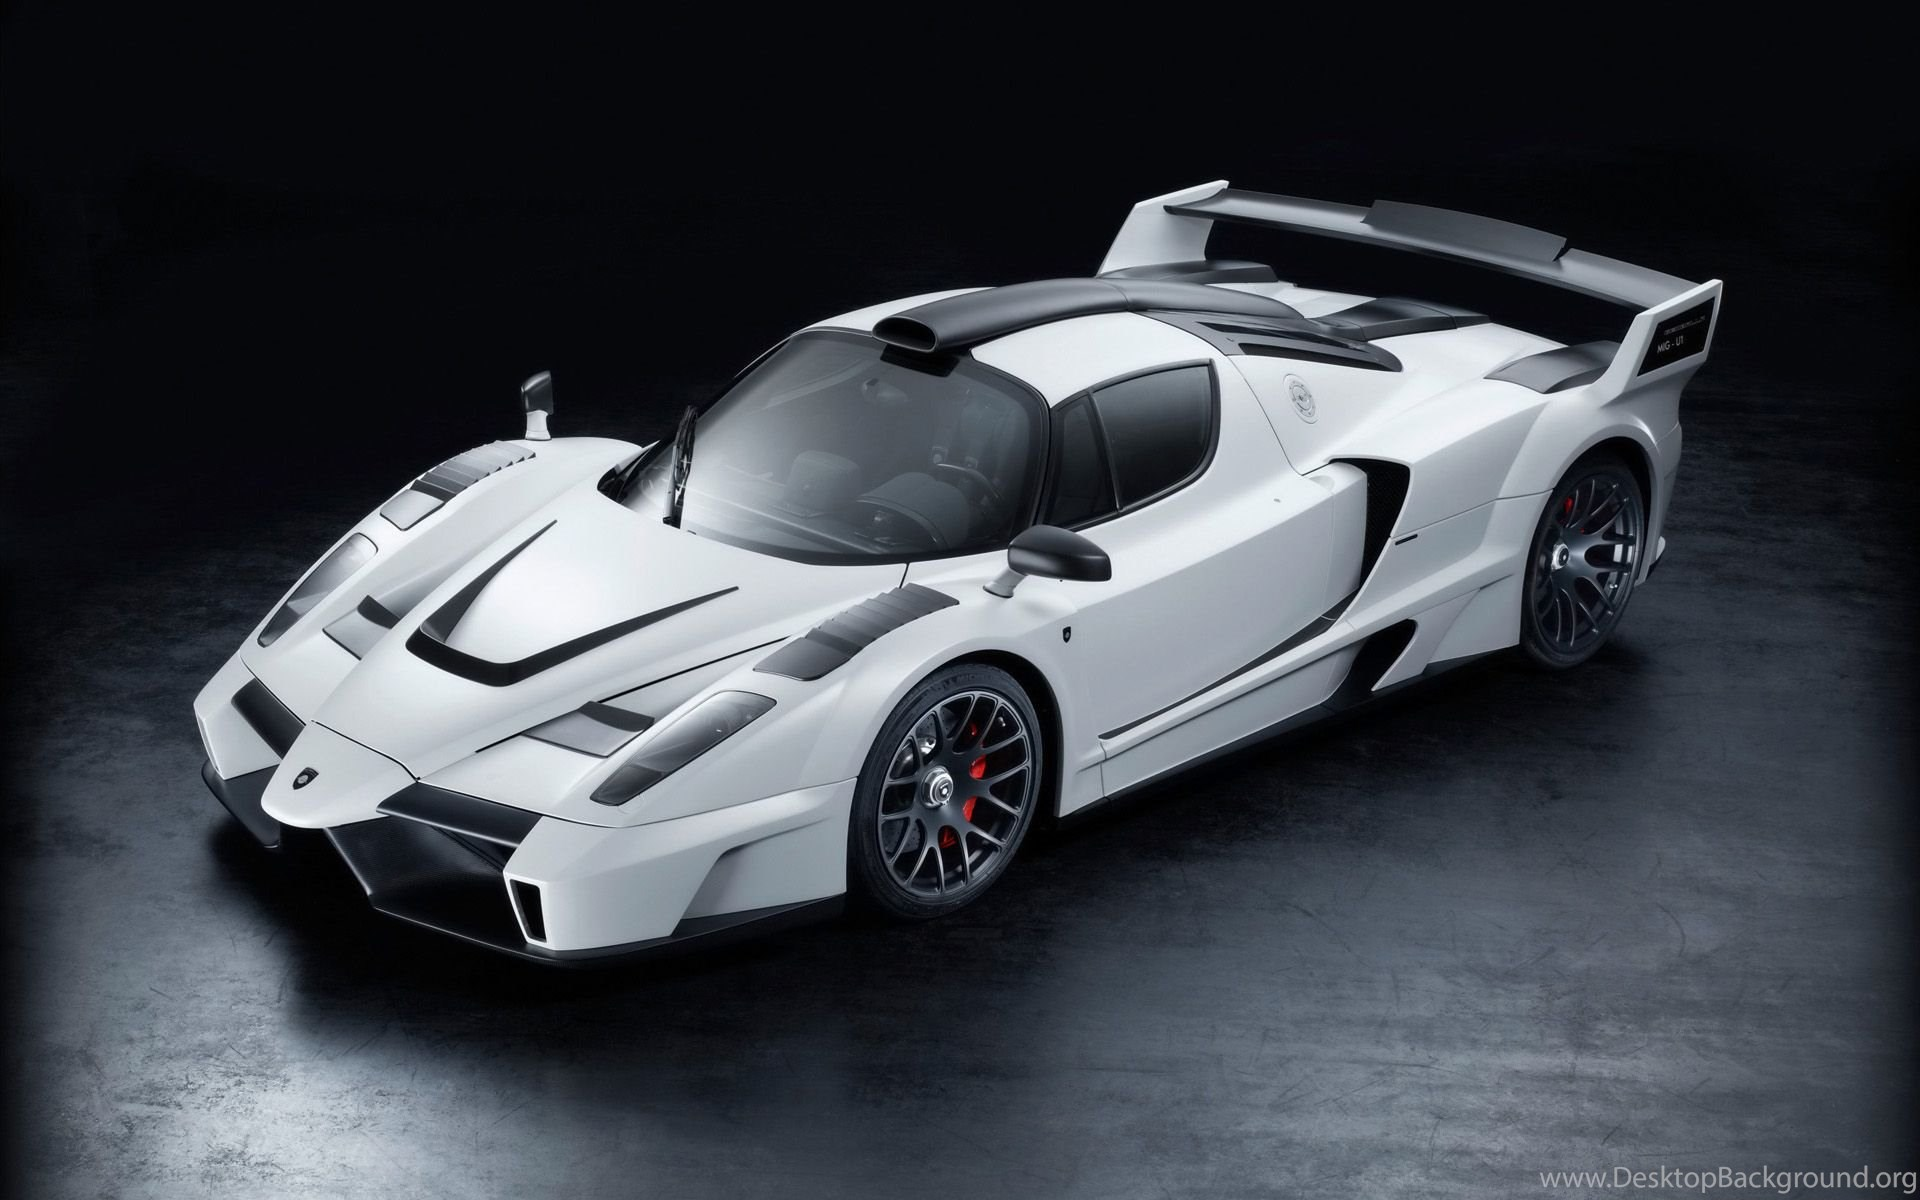 Super Cars HD Wallpapers – The Best Super Cars HD Wallpapers